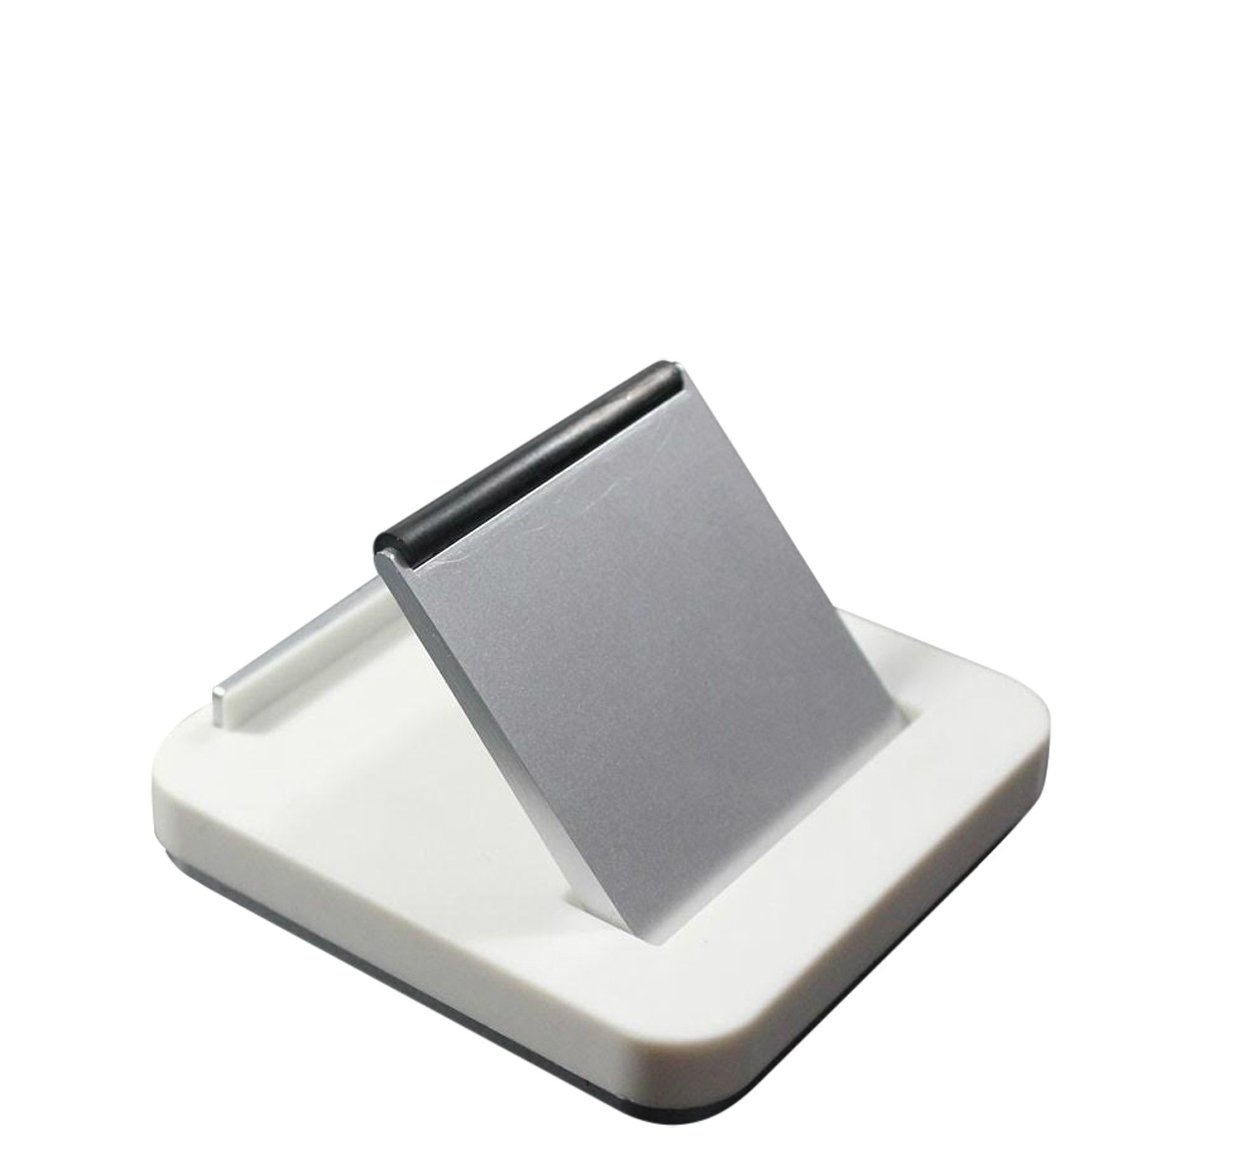 Tstand White PVCS Inc Tmvel Cell Phone Cradle for Universal//Smartphones Retail Packaging